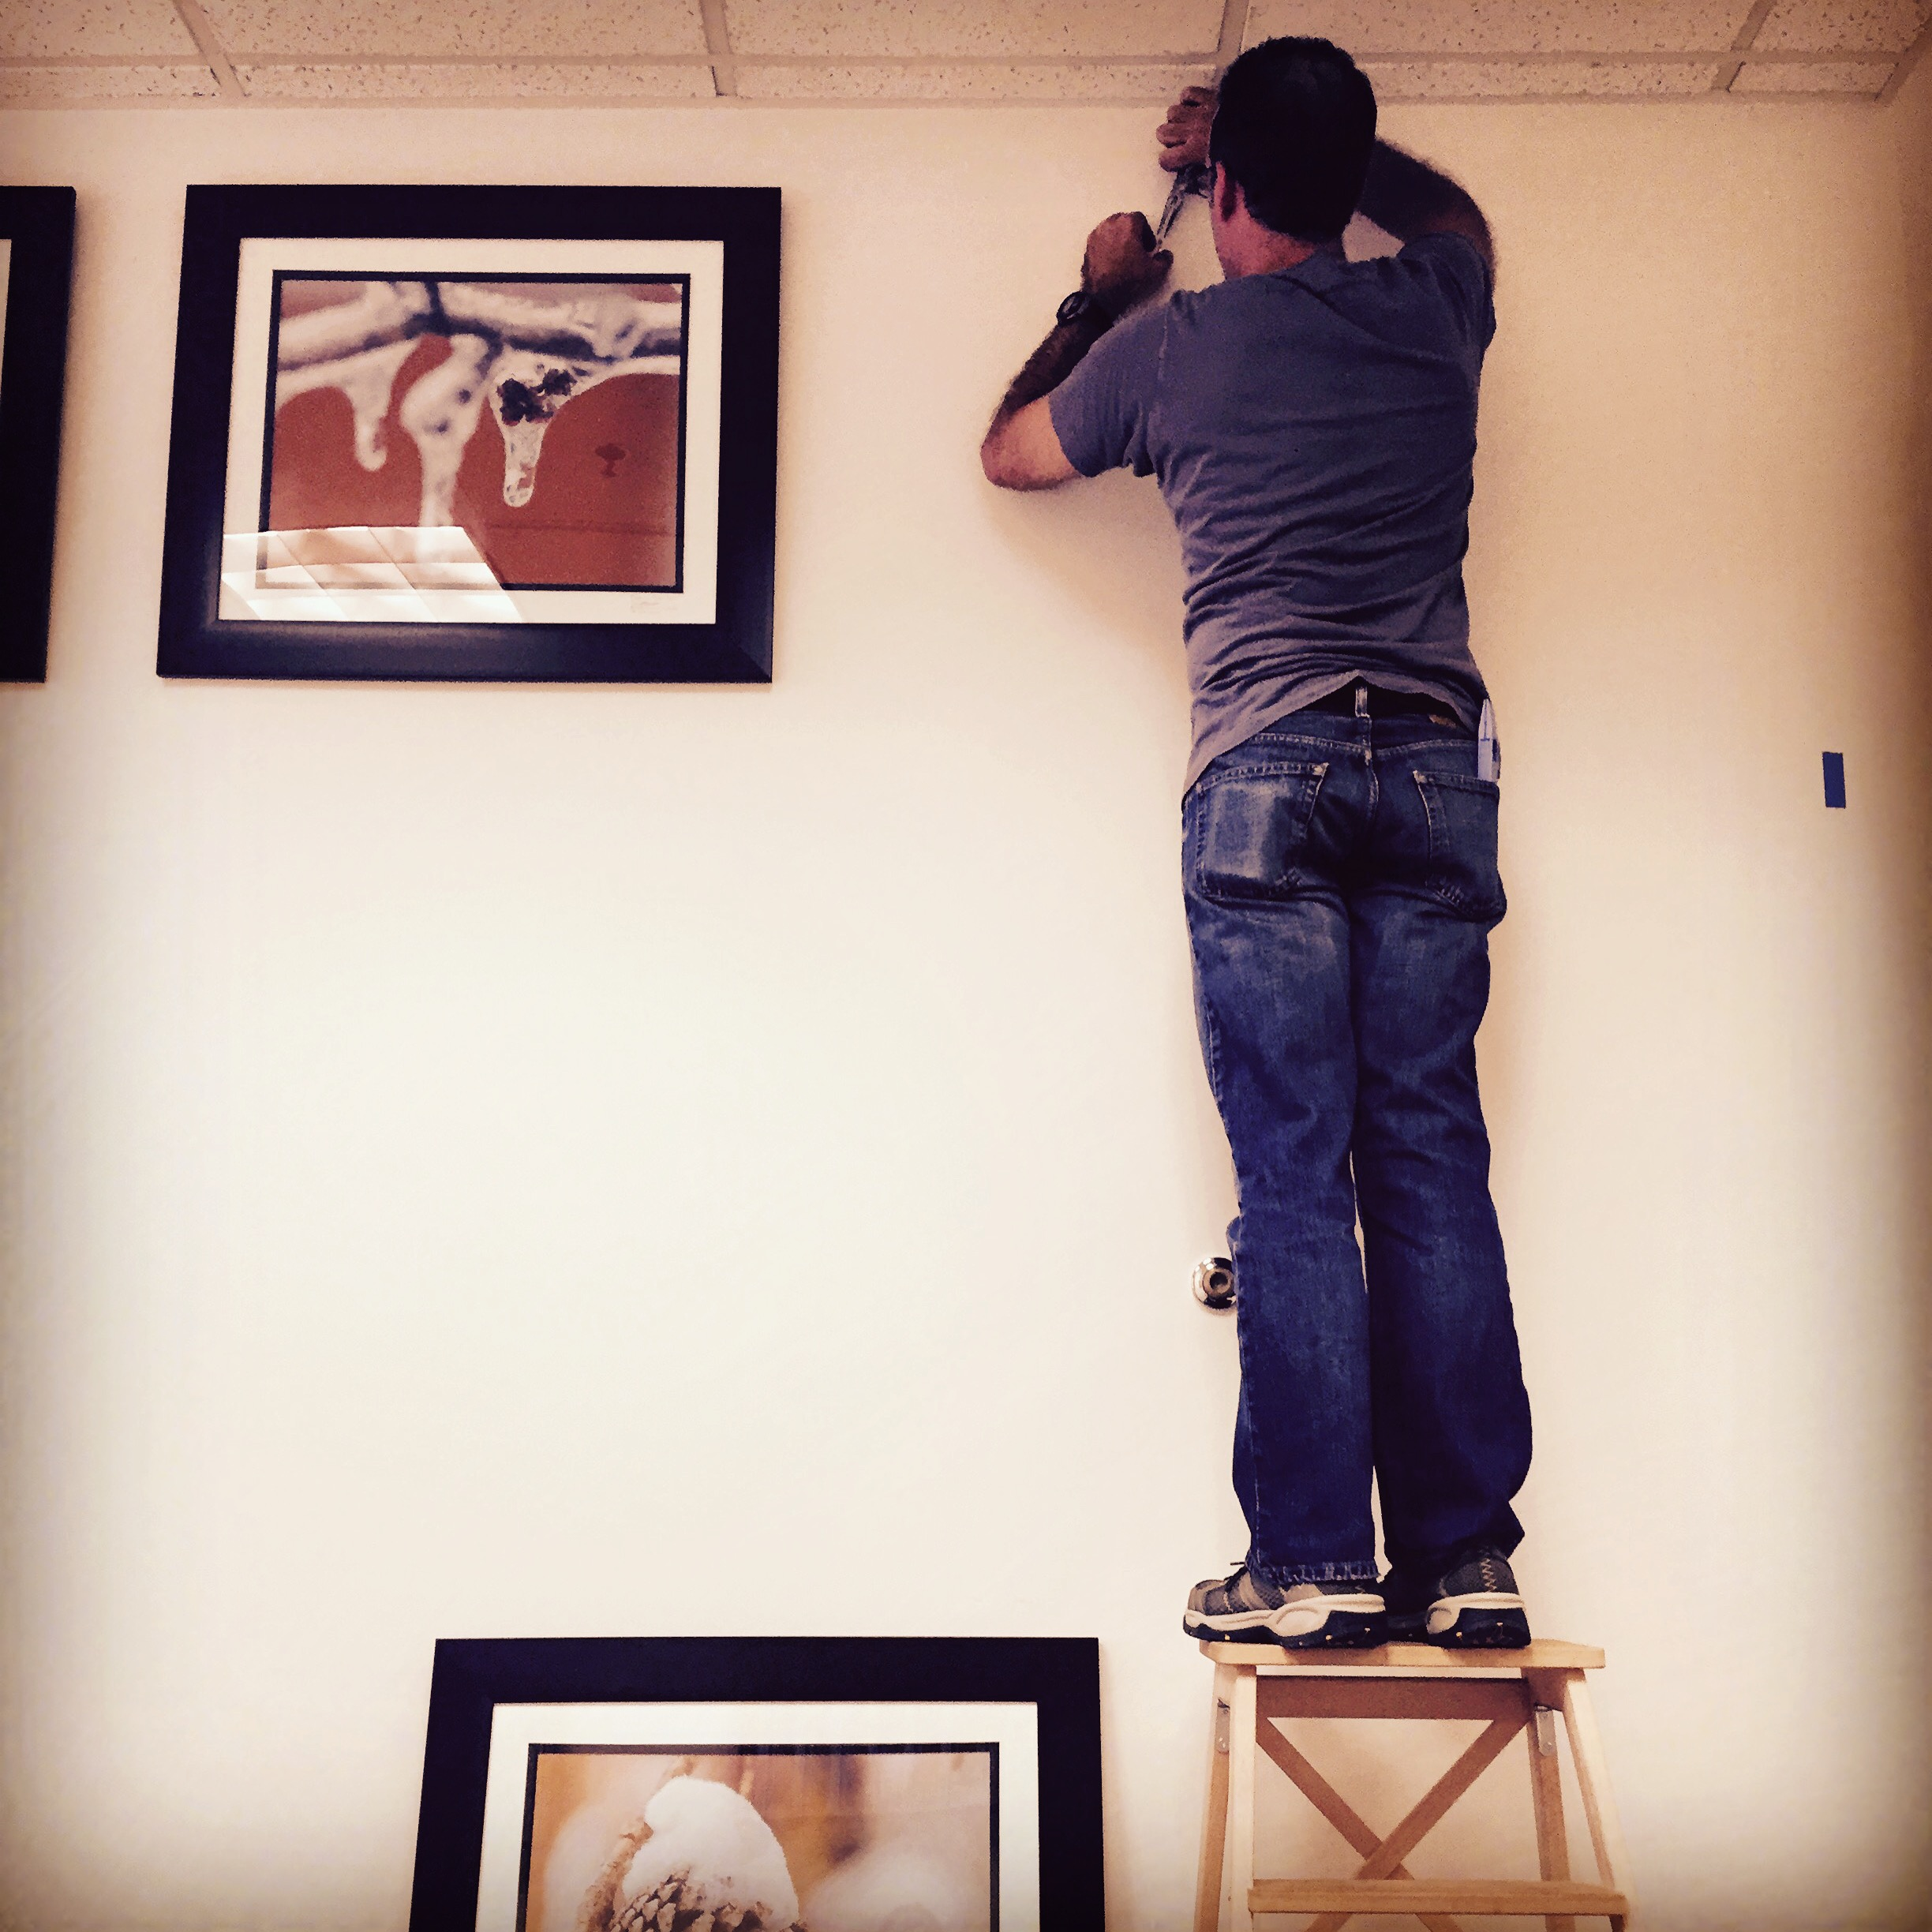 Dan hanging his work and getting ready for the opening.